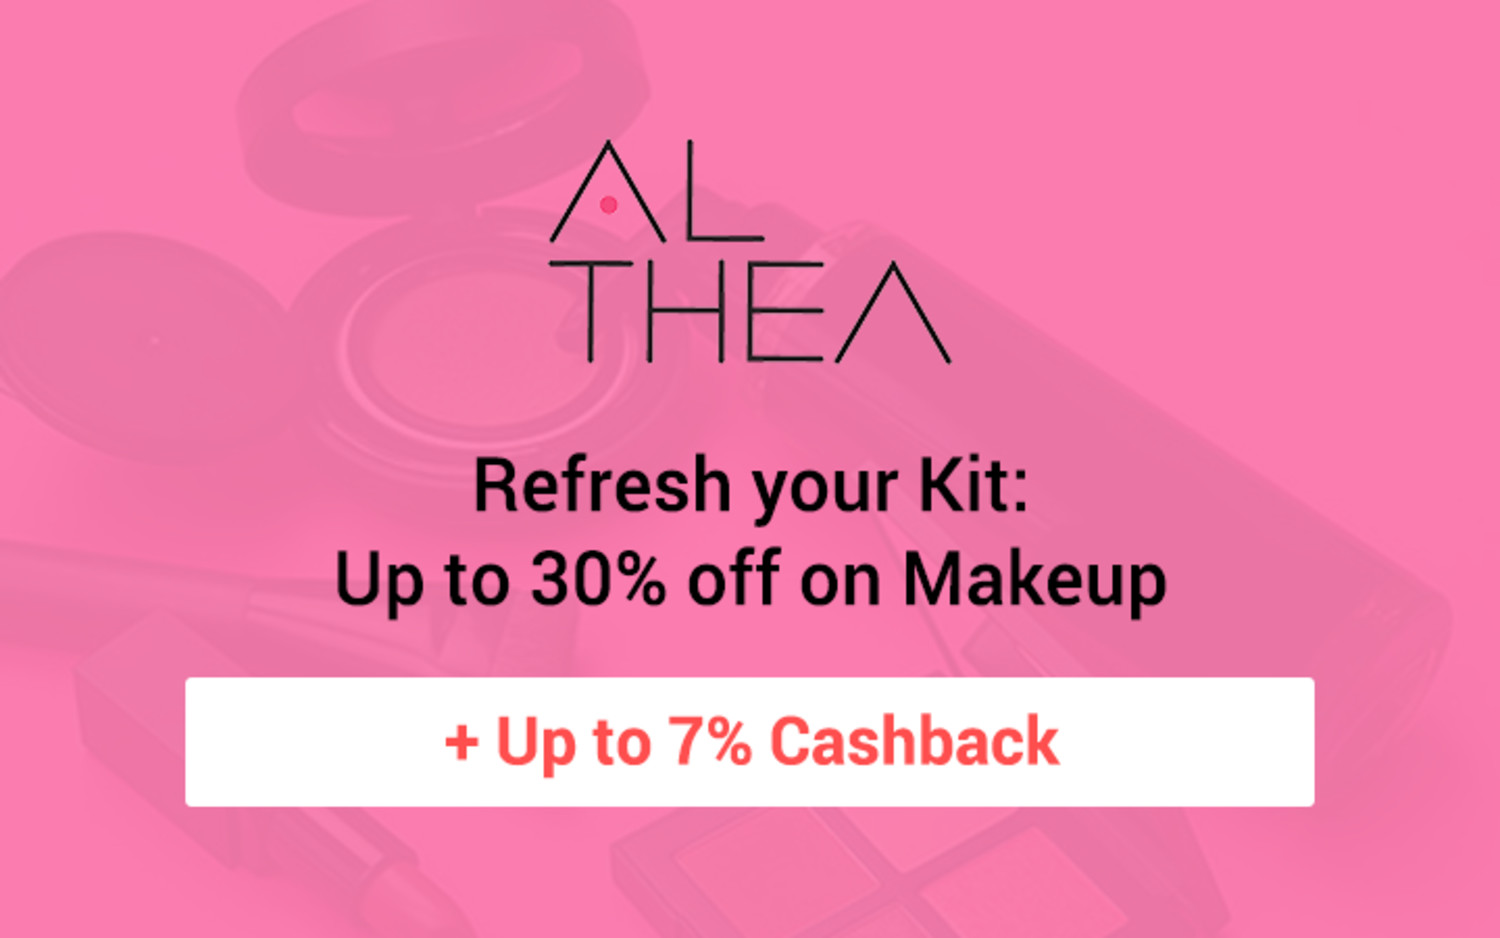 Althea Refresh your Kit: Up to 30% off on Makeup + Up to 7% Cashback cta: Shop now